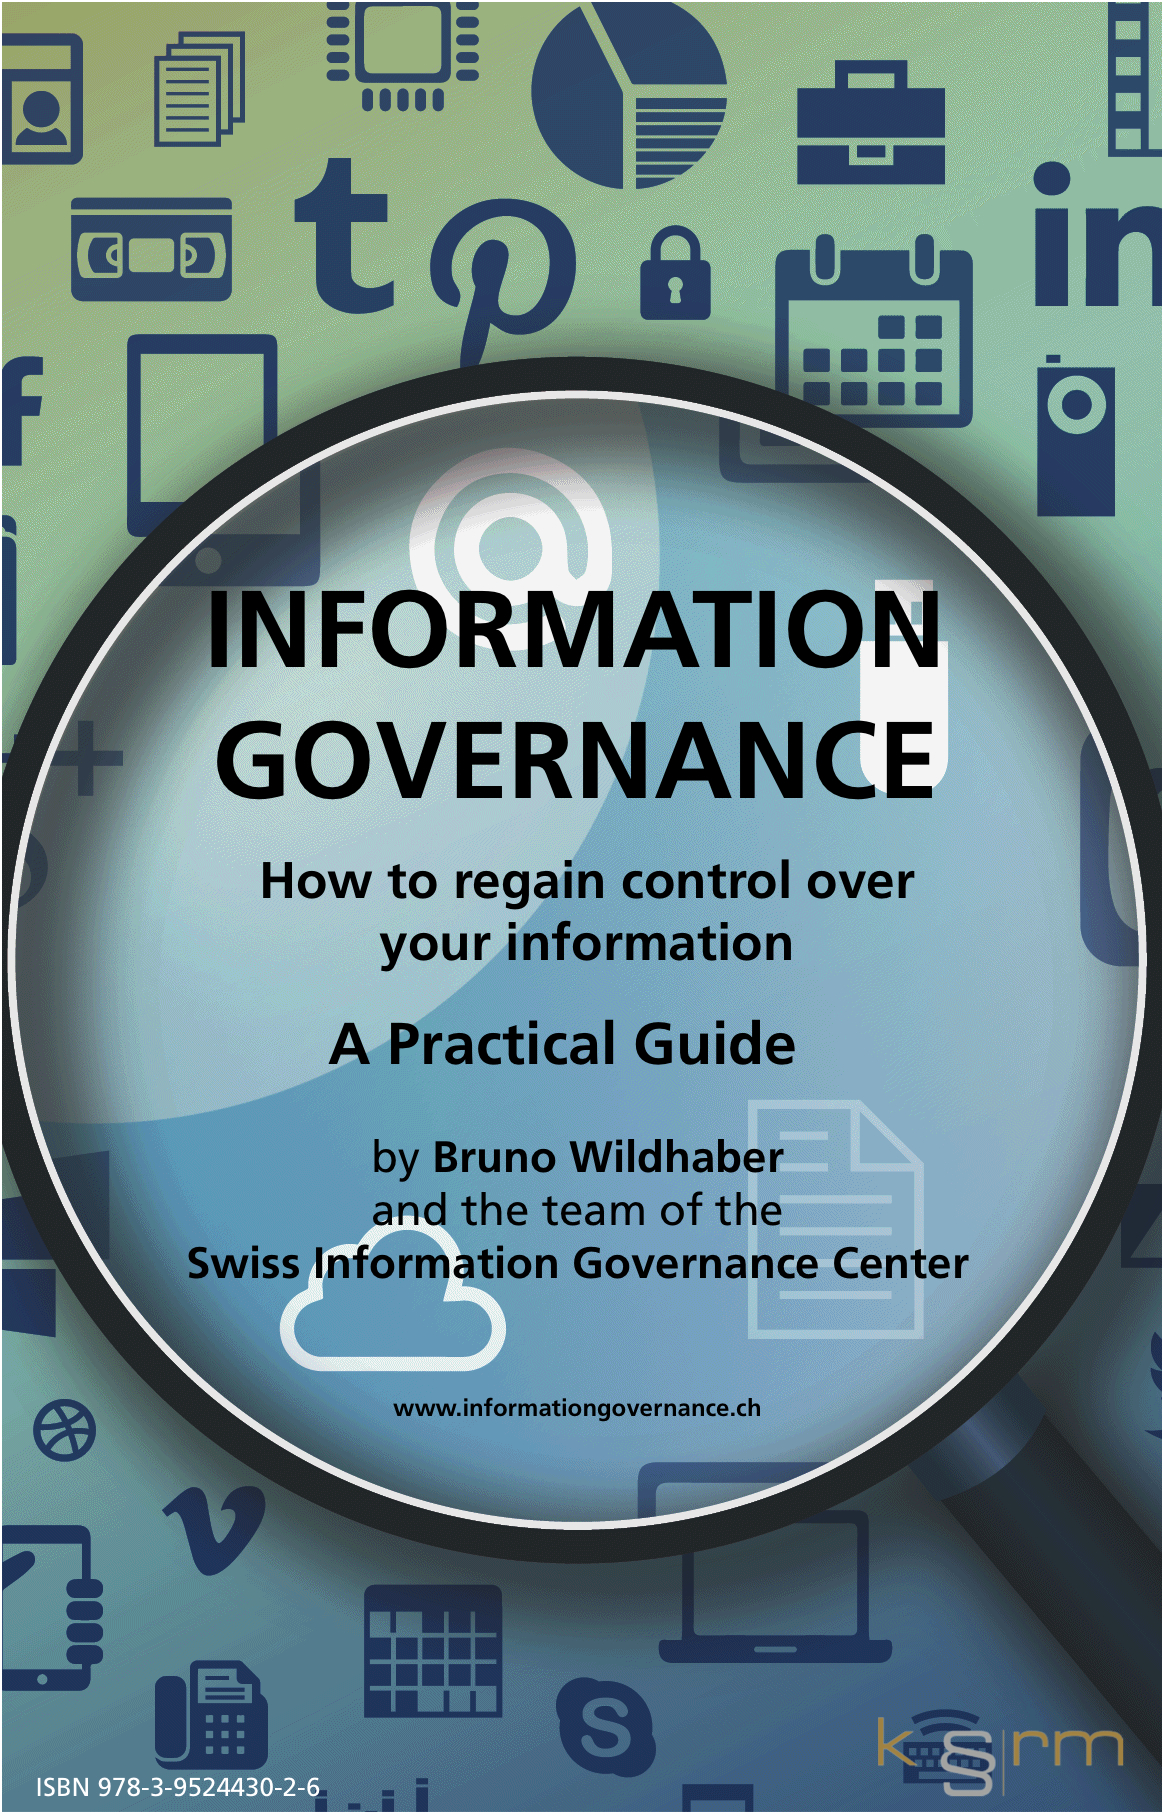 Information Governance - A Practical Guide